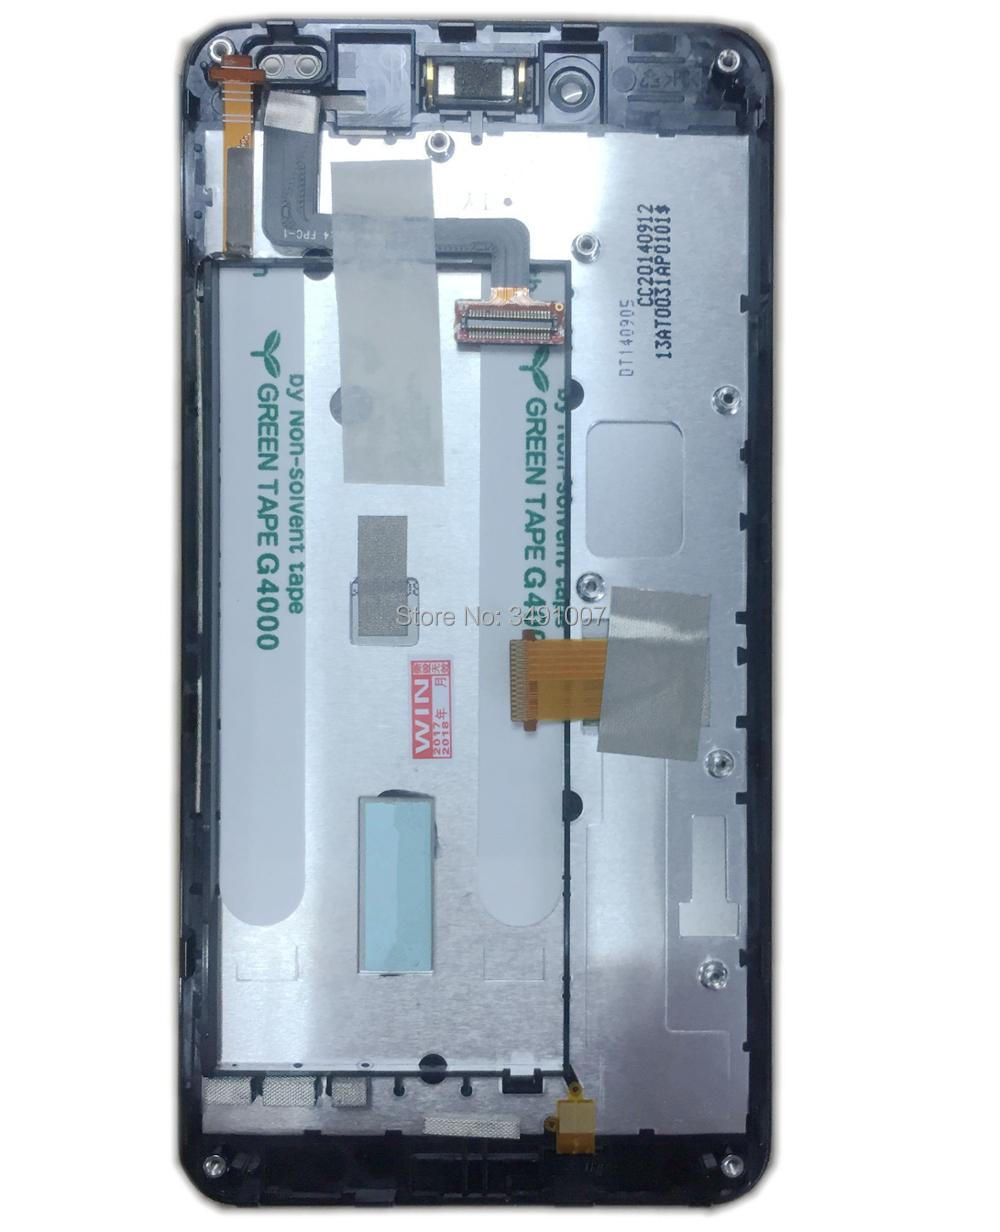 5 LCD Display Touch Screen Digitizer Assembly For Asus PadFone Infinity A80 5h35aaq009389 lcd display screens touch screen